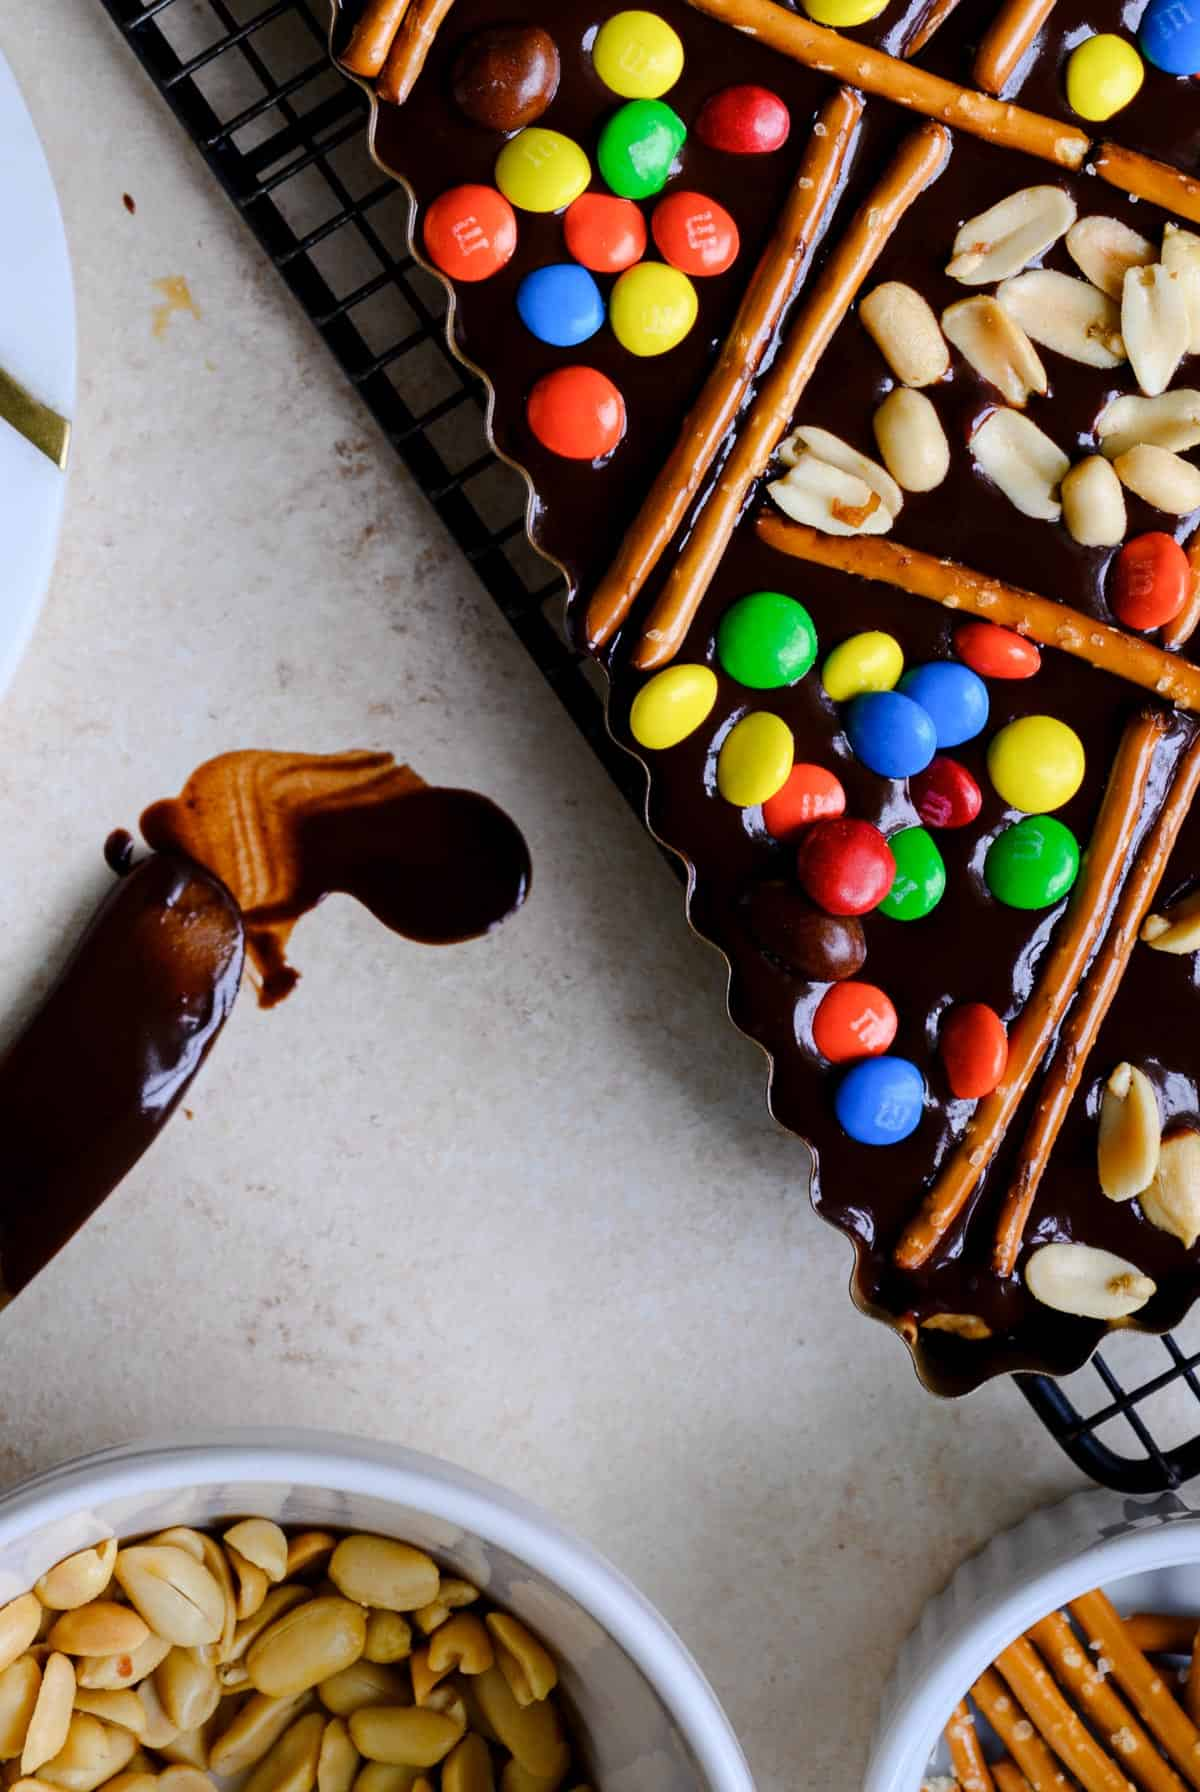 ruffled edge tart pan with chocolate ganache,pretzels, and candy on top with white bowls of pretzels and peanuts